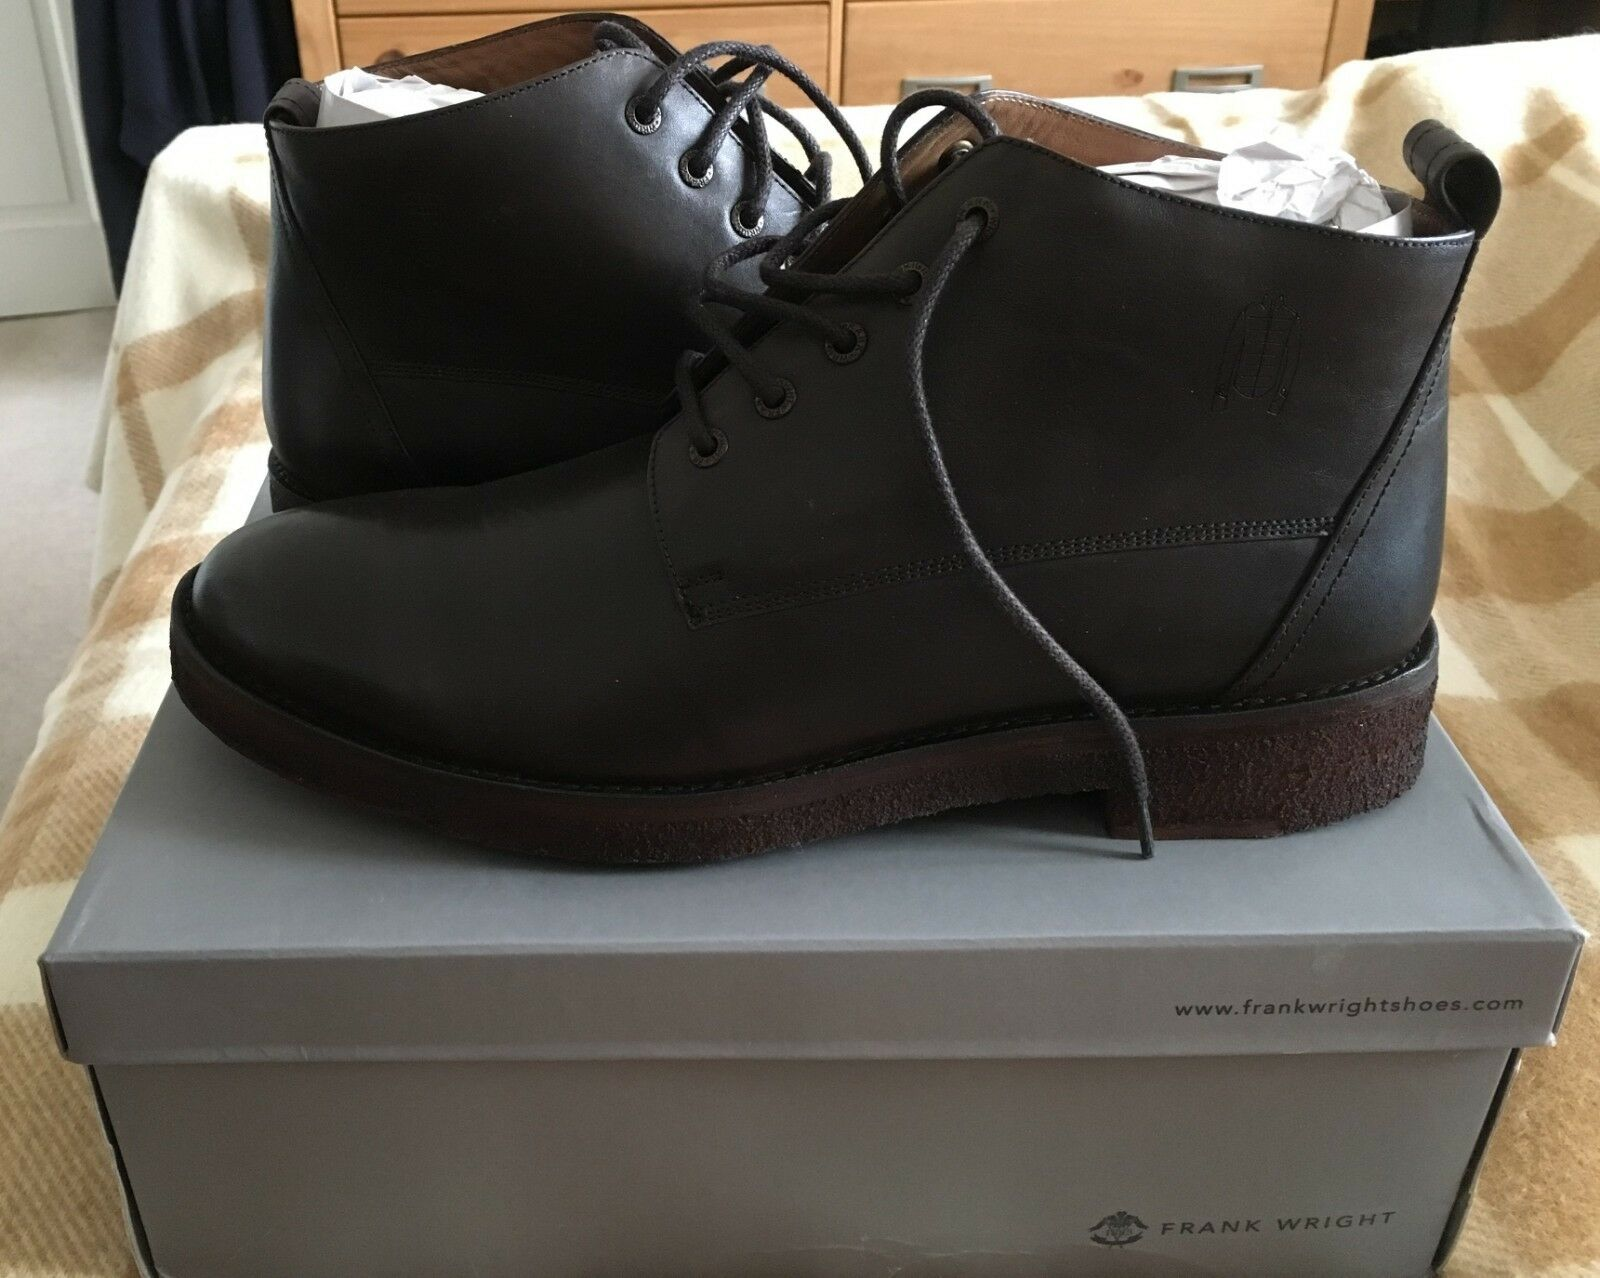 Frank Wright - Chestnut 'Russell' matt leather lace up boots - Size 11